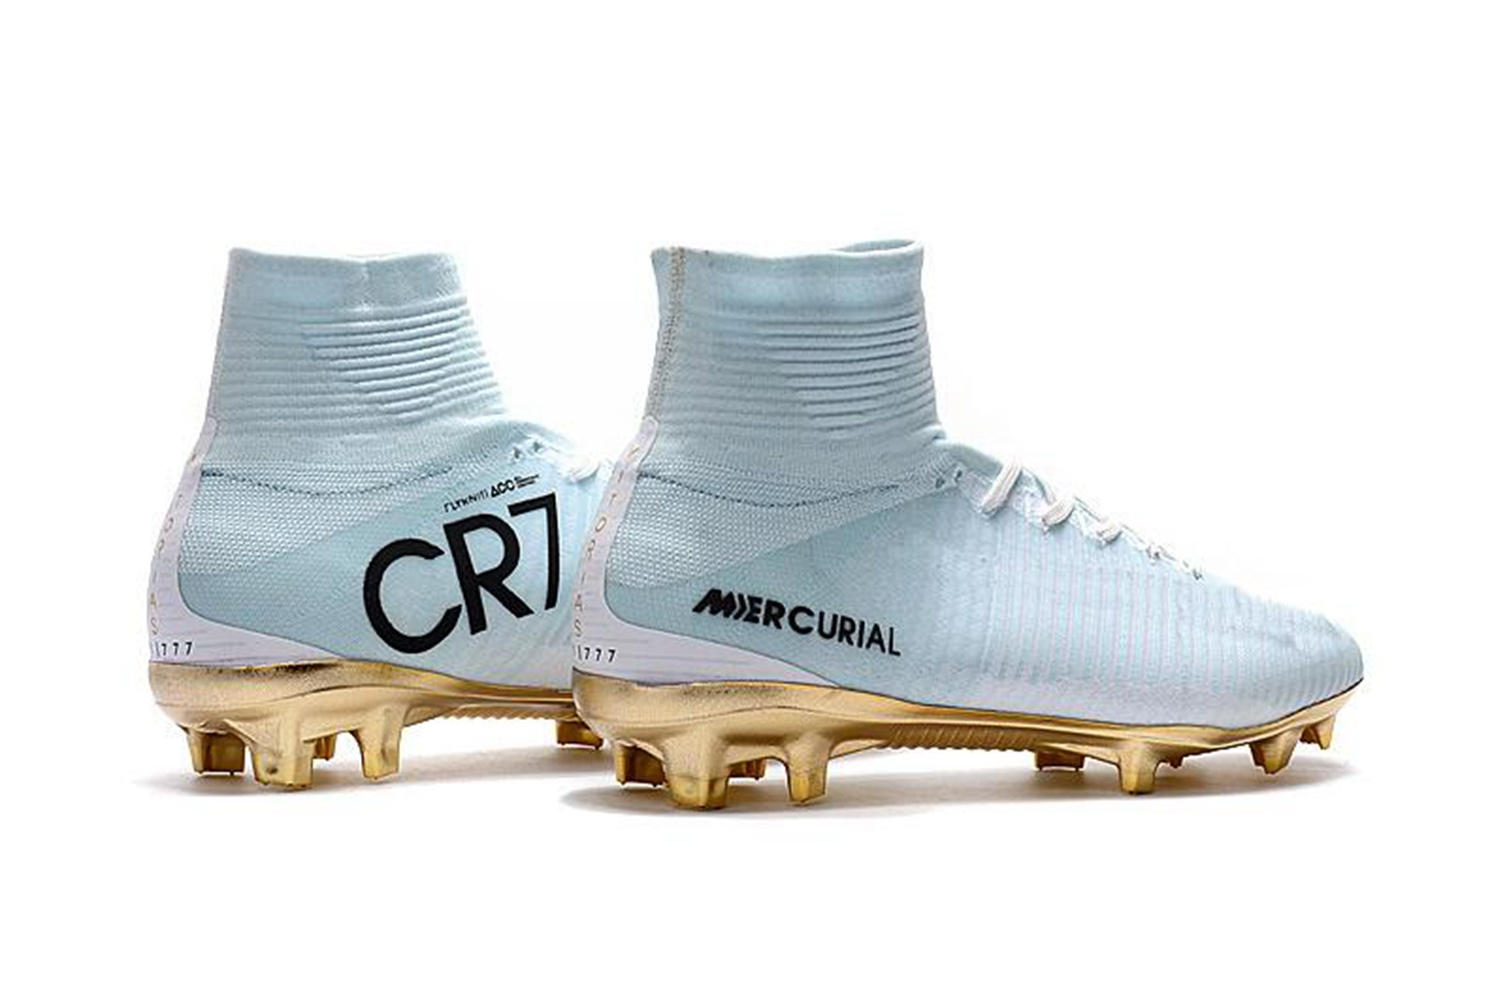 Wholesale Cr7 White Cleats Original on